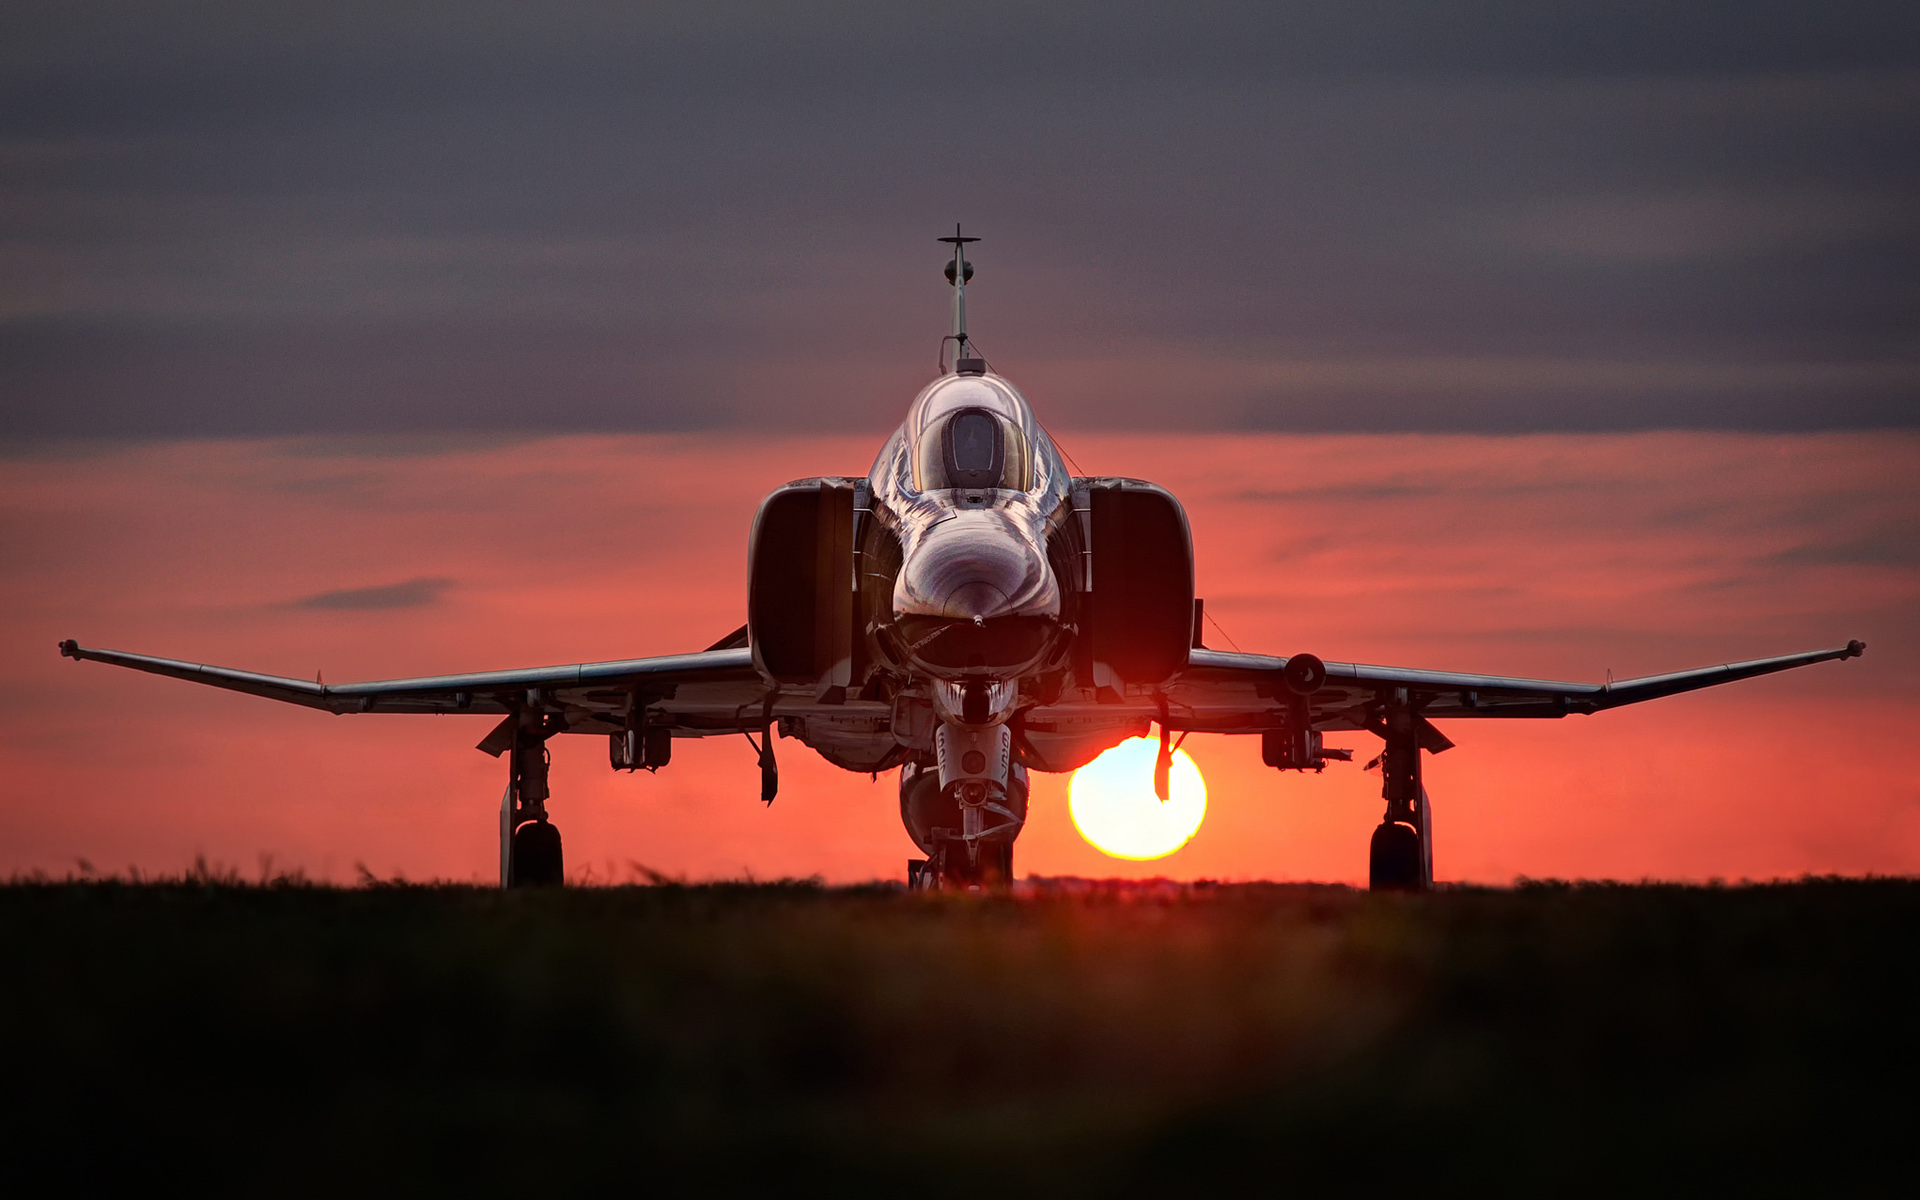 Hd Nature Wallpapers For Windows 7 Free Download Mcdonnell Douglas F 4 Phantom Ii Wallpapers Wallpapers Hd